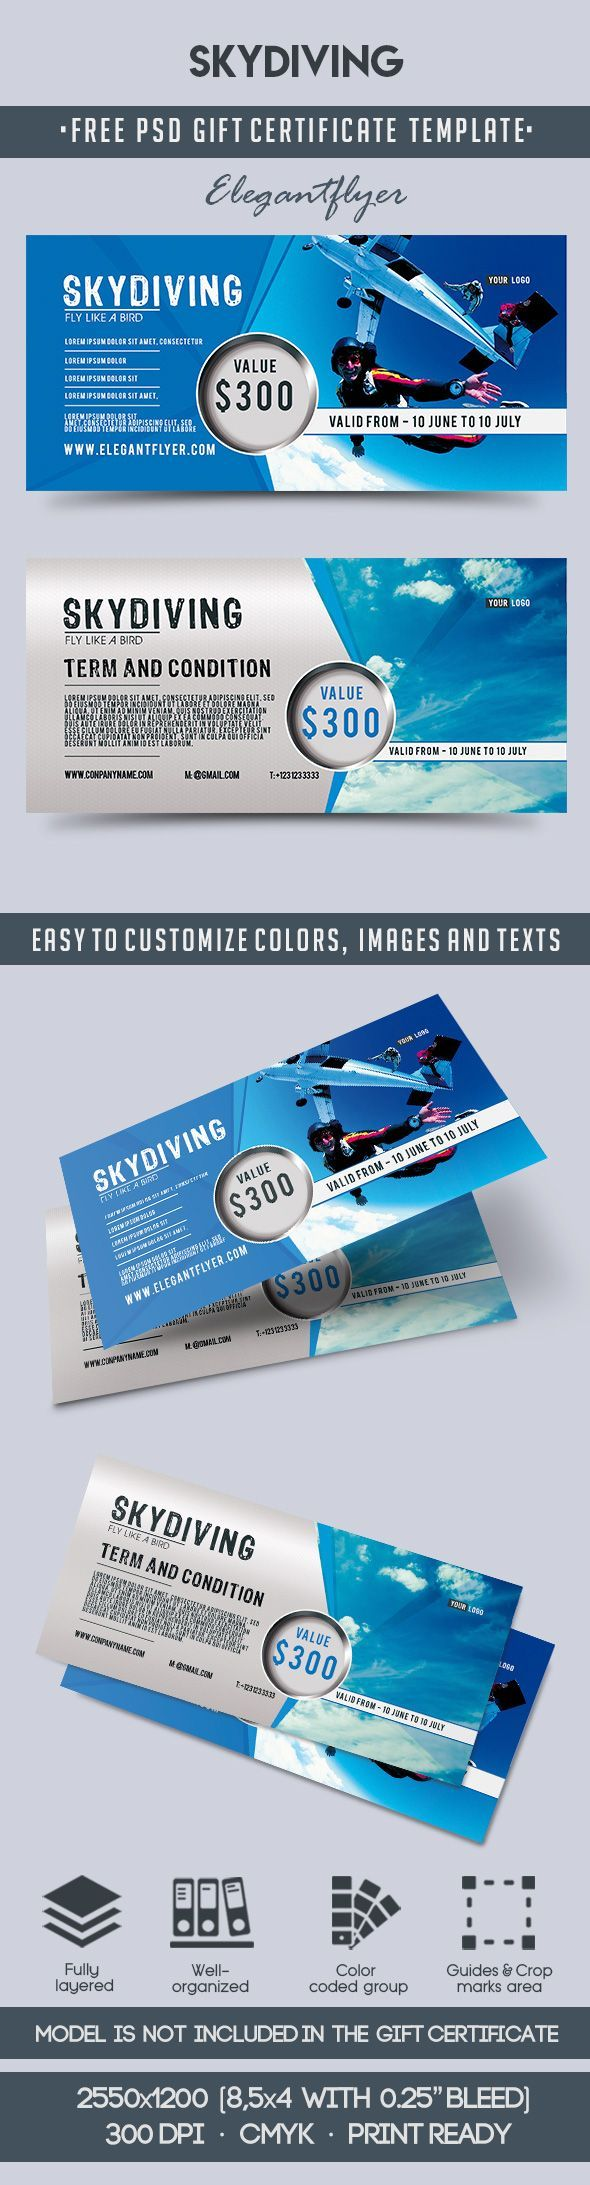 Skydiving Free Gift Certificate Psd Template